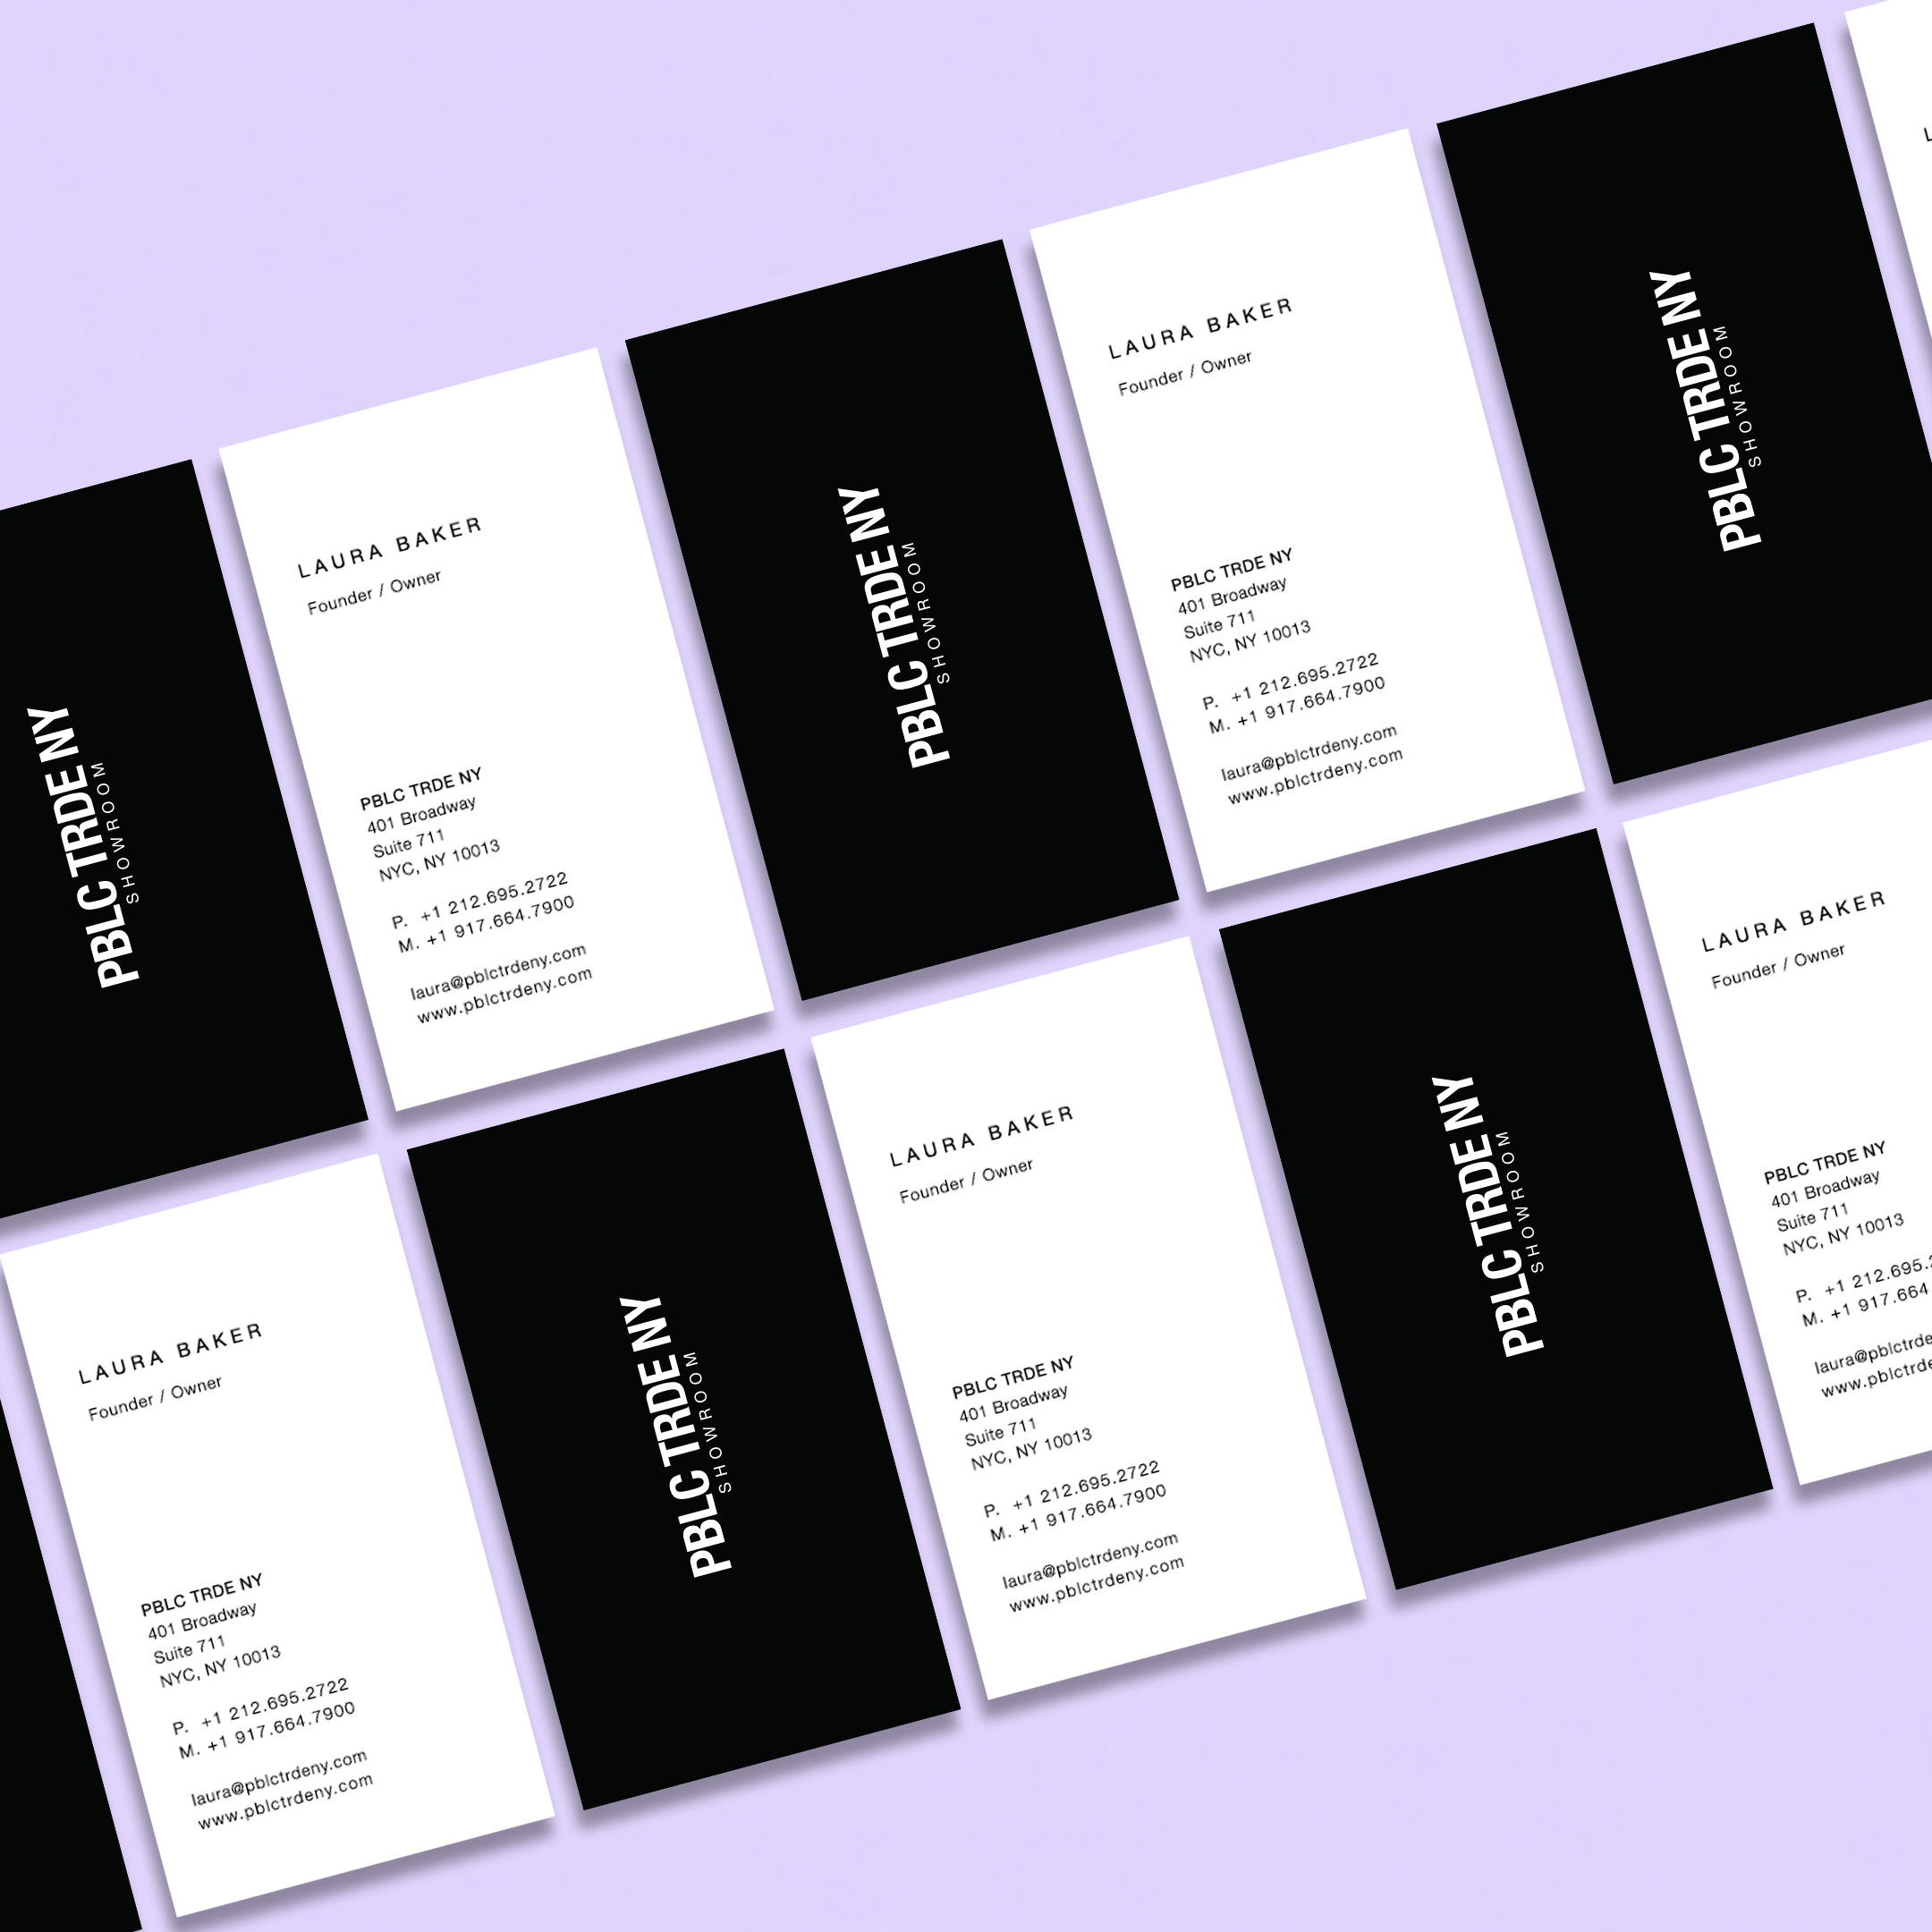 PBLC TRDE NY BUSINESS CARDS